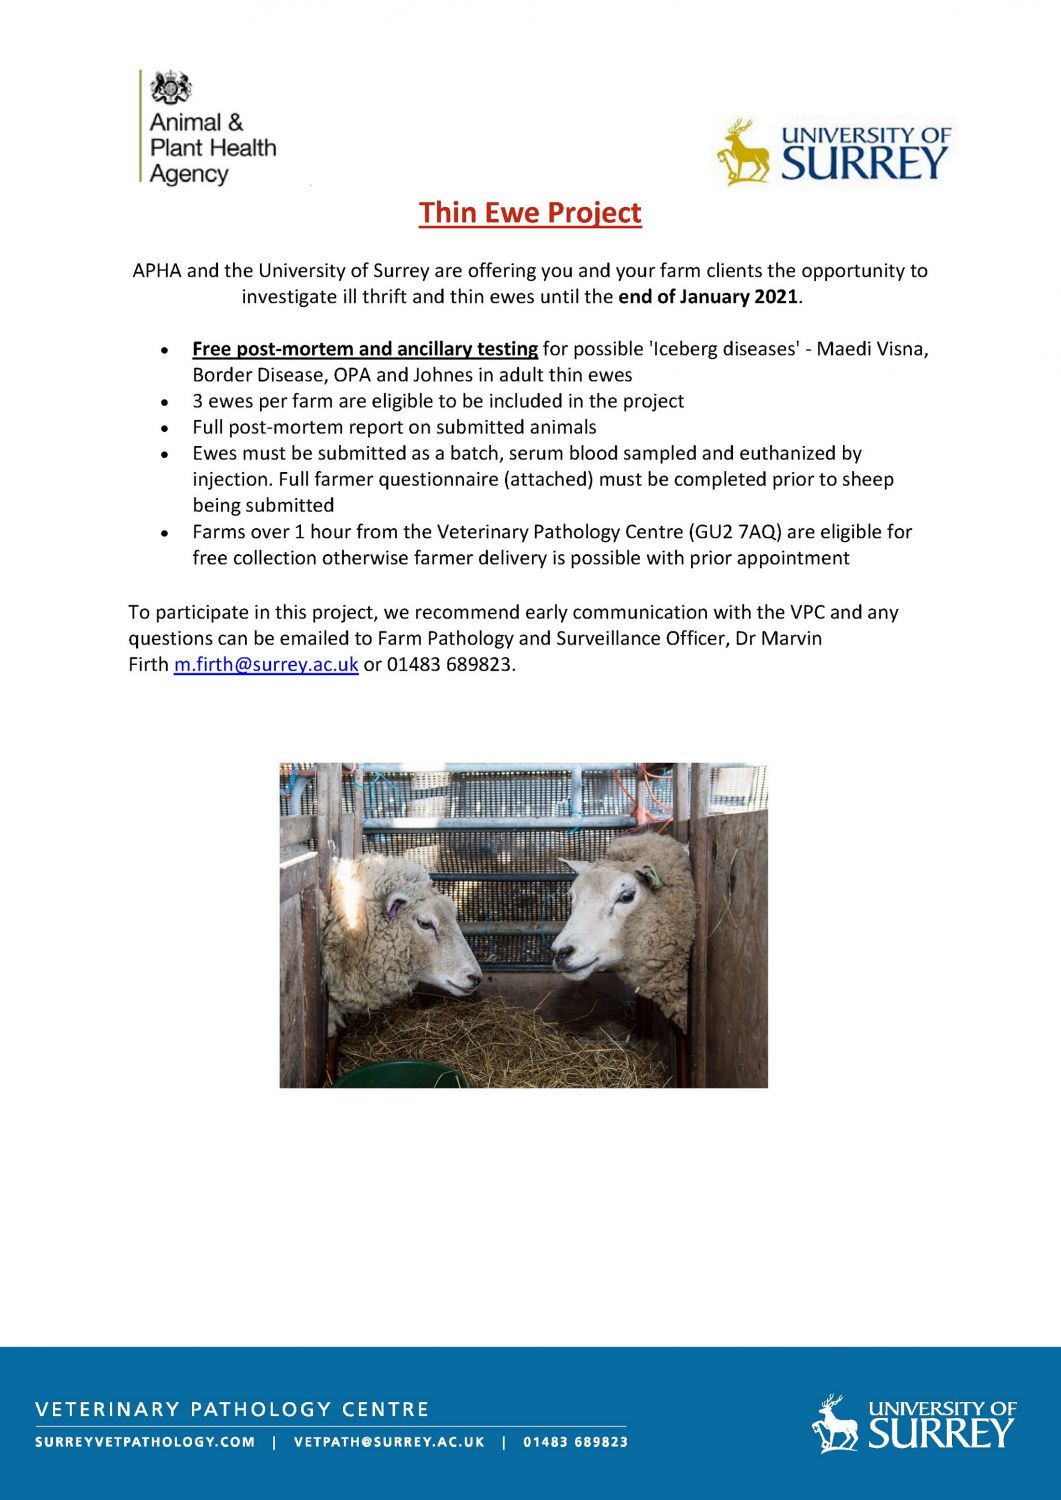 Thin Ewe Project: Extended to end of January 2021